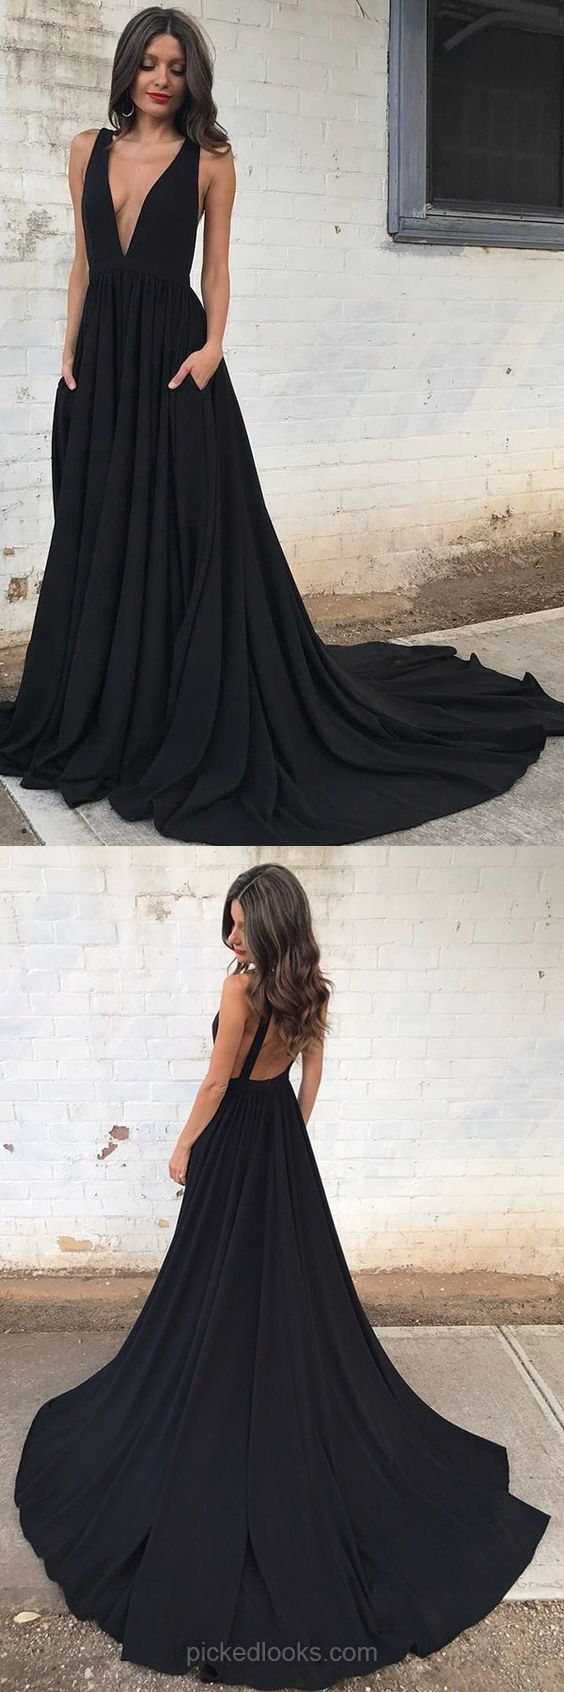 Long Ball Dresses Black, Princesses Party Dresses for Teens, V neck Graduation Dresses 2018, Cheap Military Ball Dresses